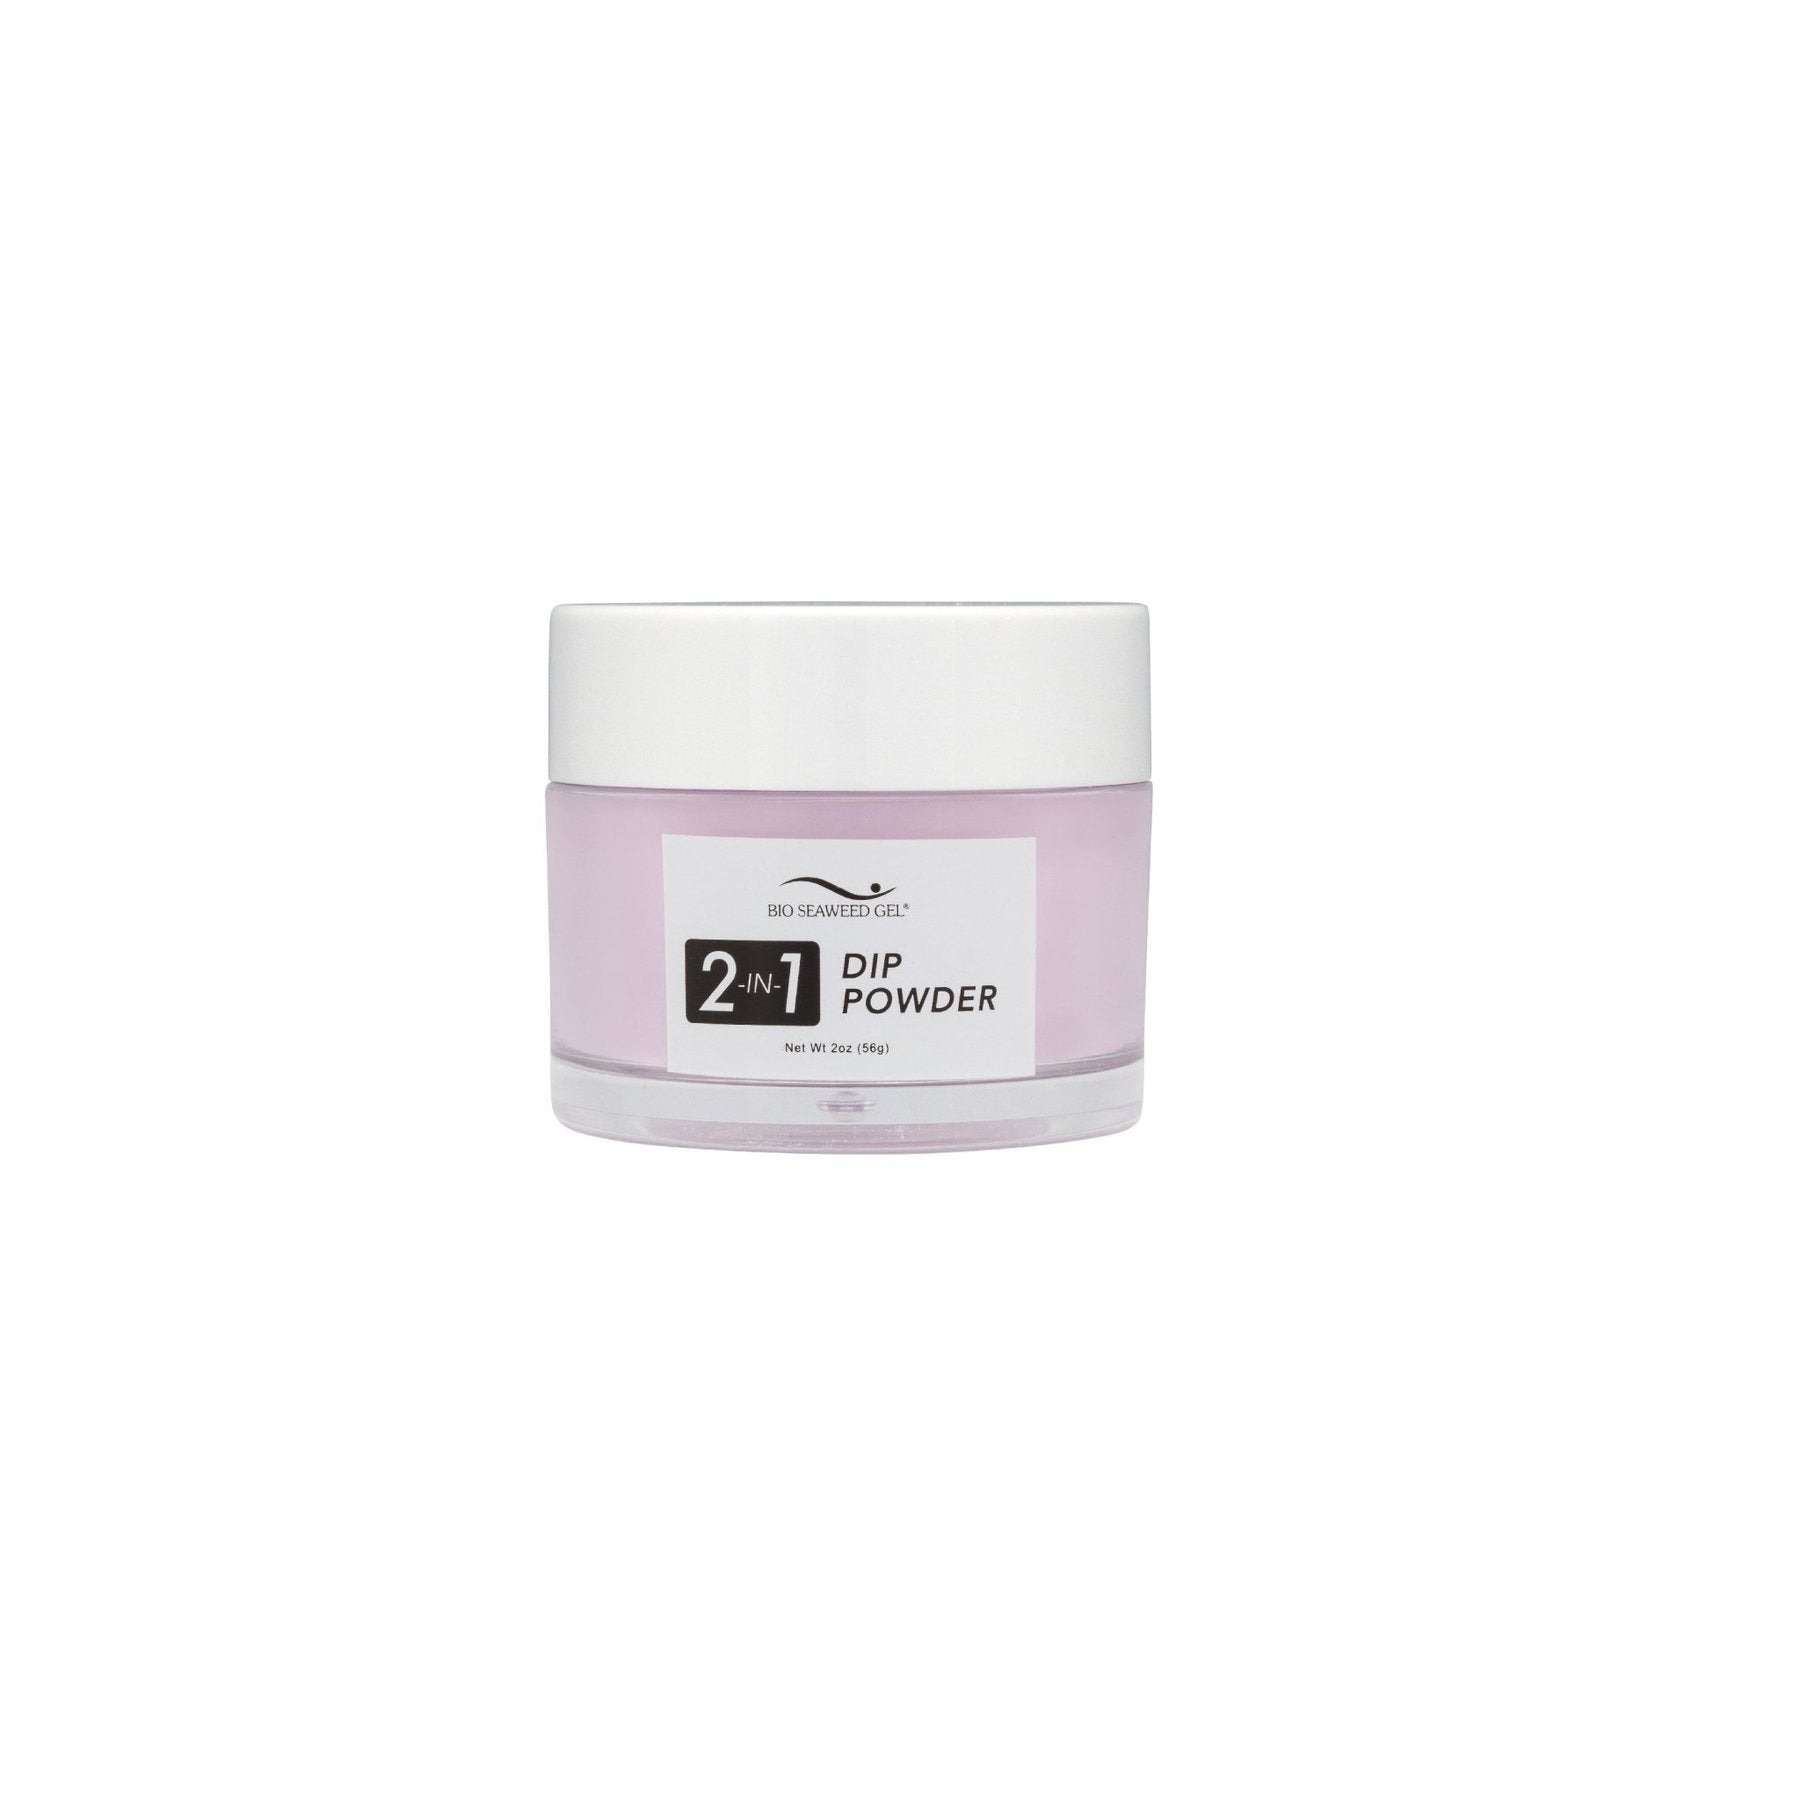 29 SUGAR PLUM | Bio Seaweed Gel® Dip Powder System - CM Nails & Beauty Supply